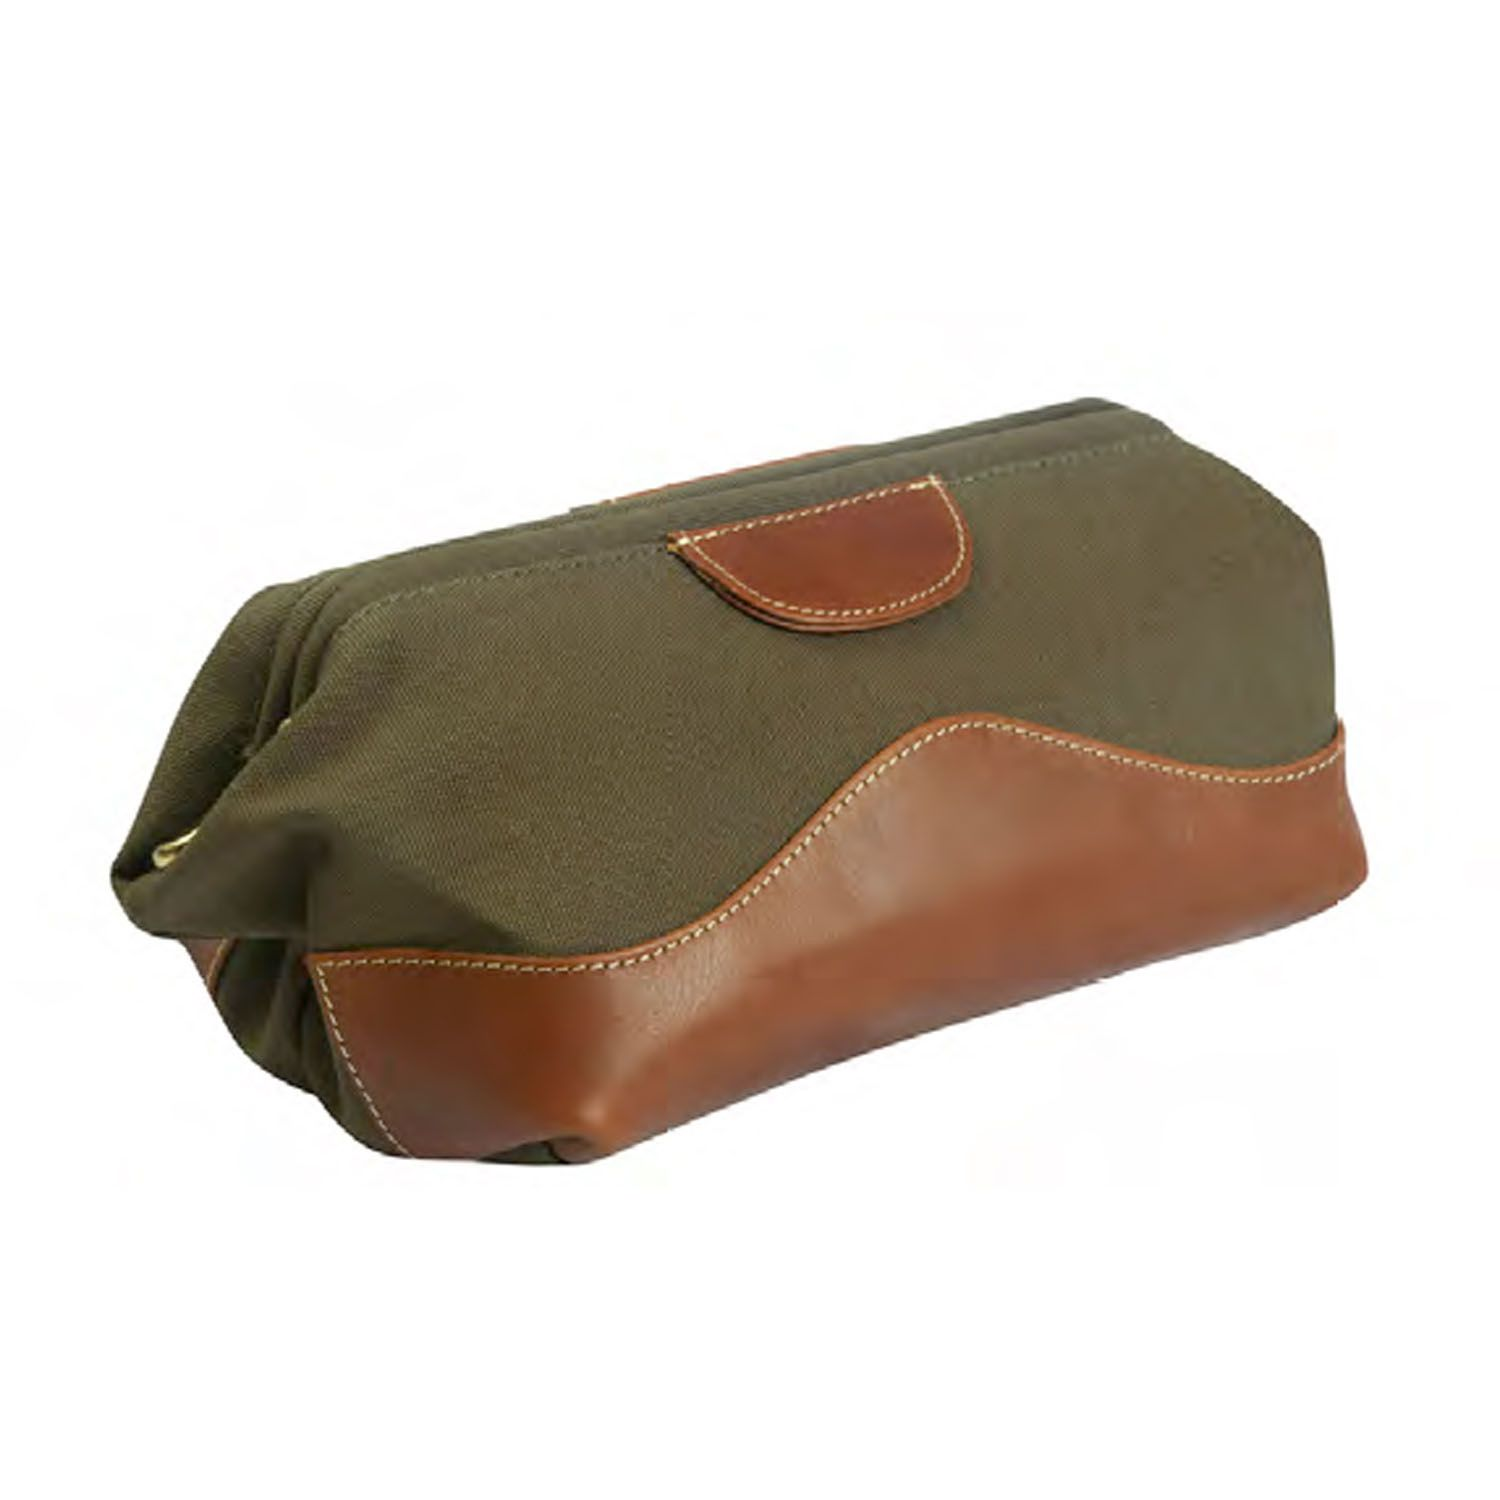 Employees will appreciate receiving this travel bag just in time for holiday trips. The large mouth opening makes it easy to pack while the full-grain buffalo hide adds impeccable style.